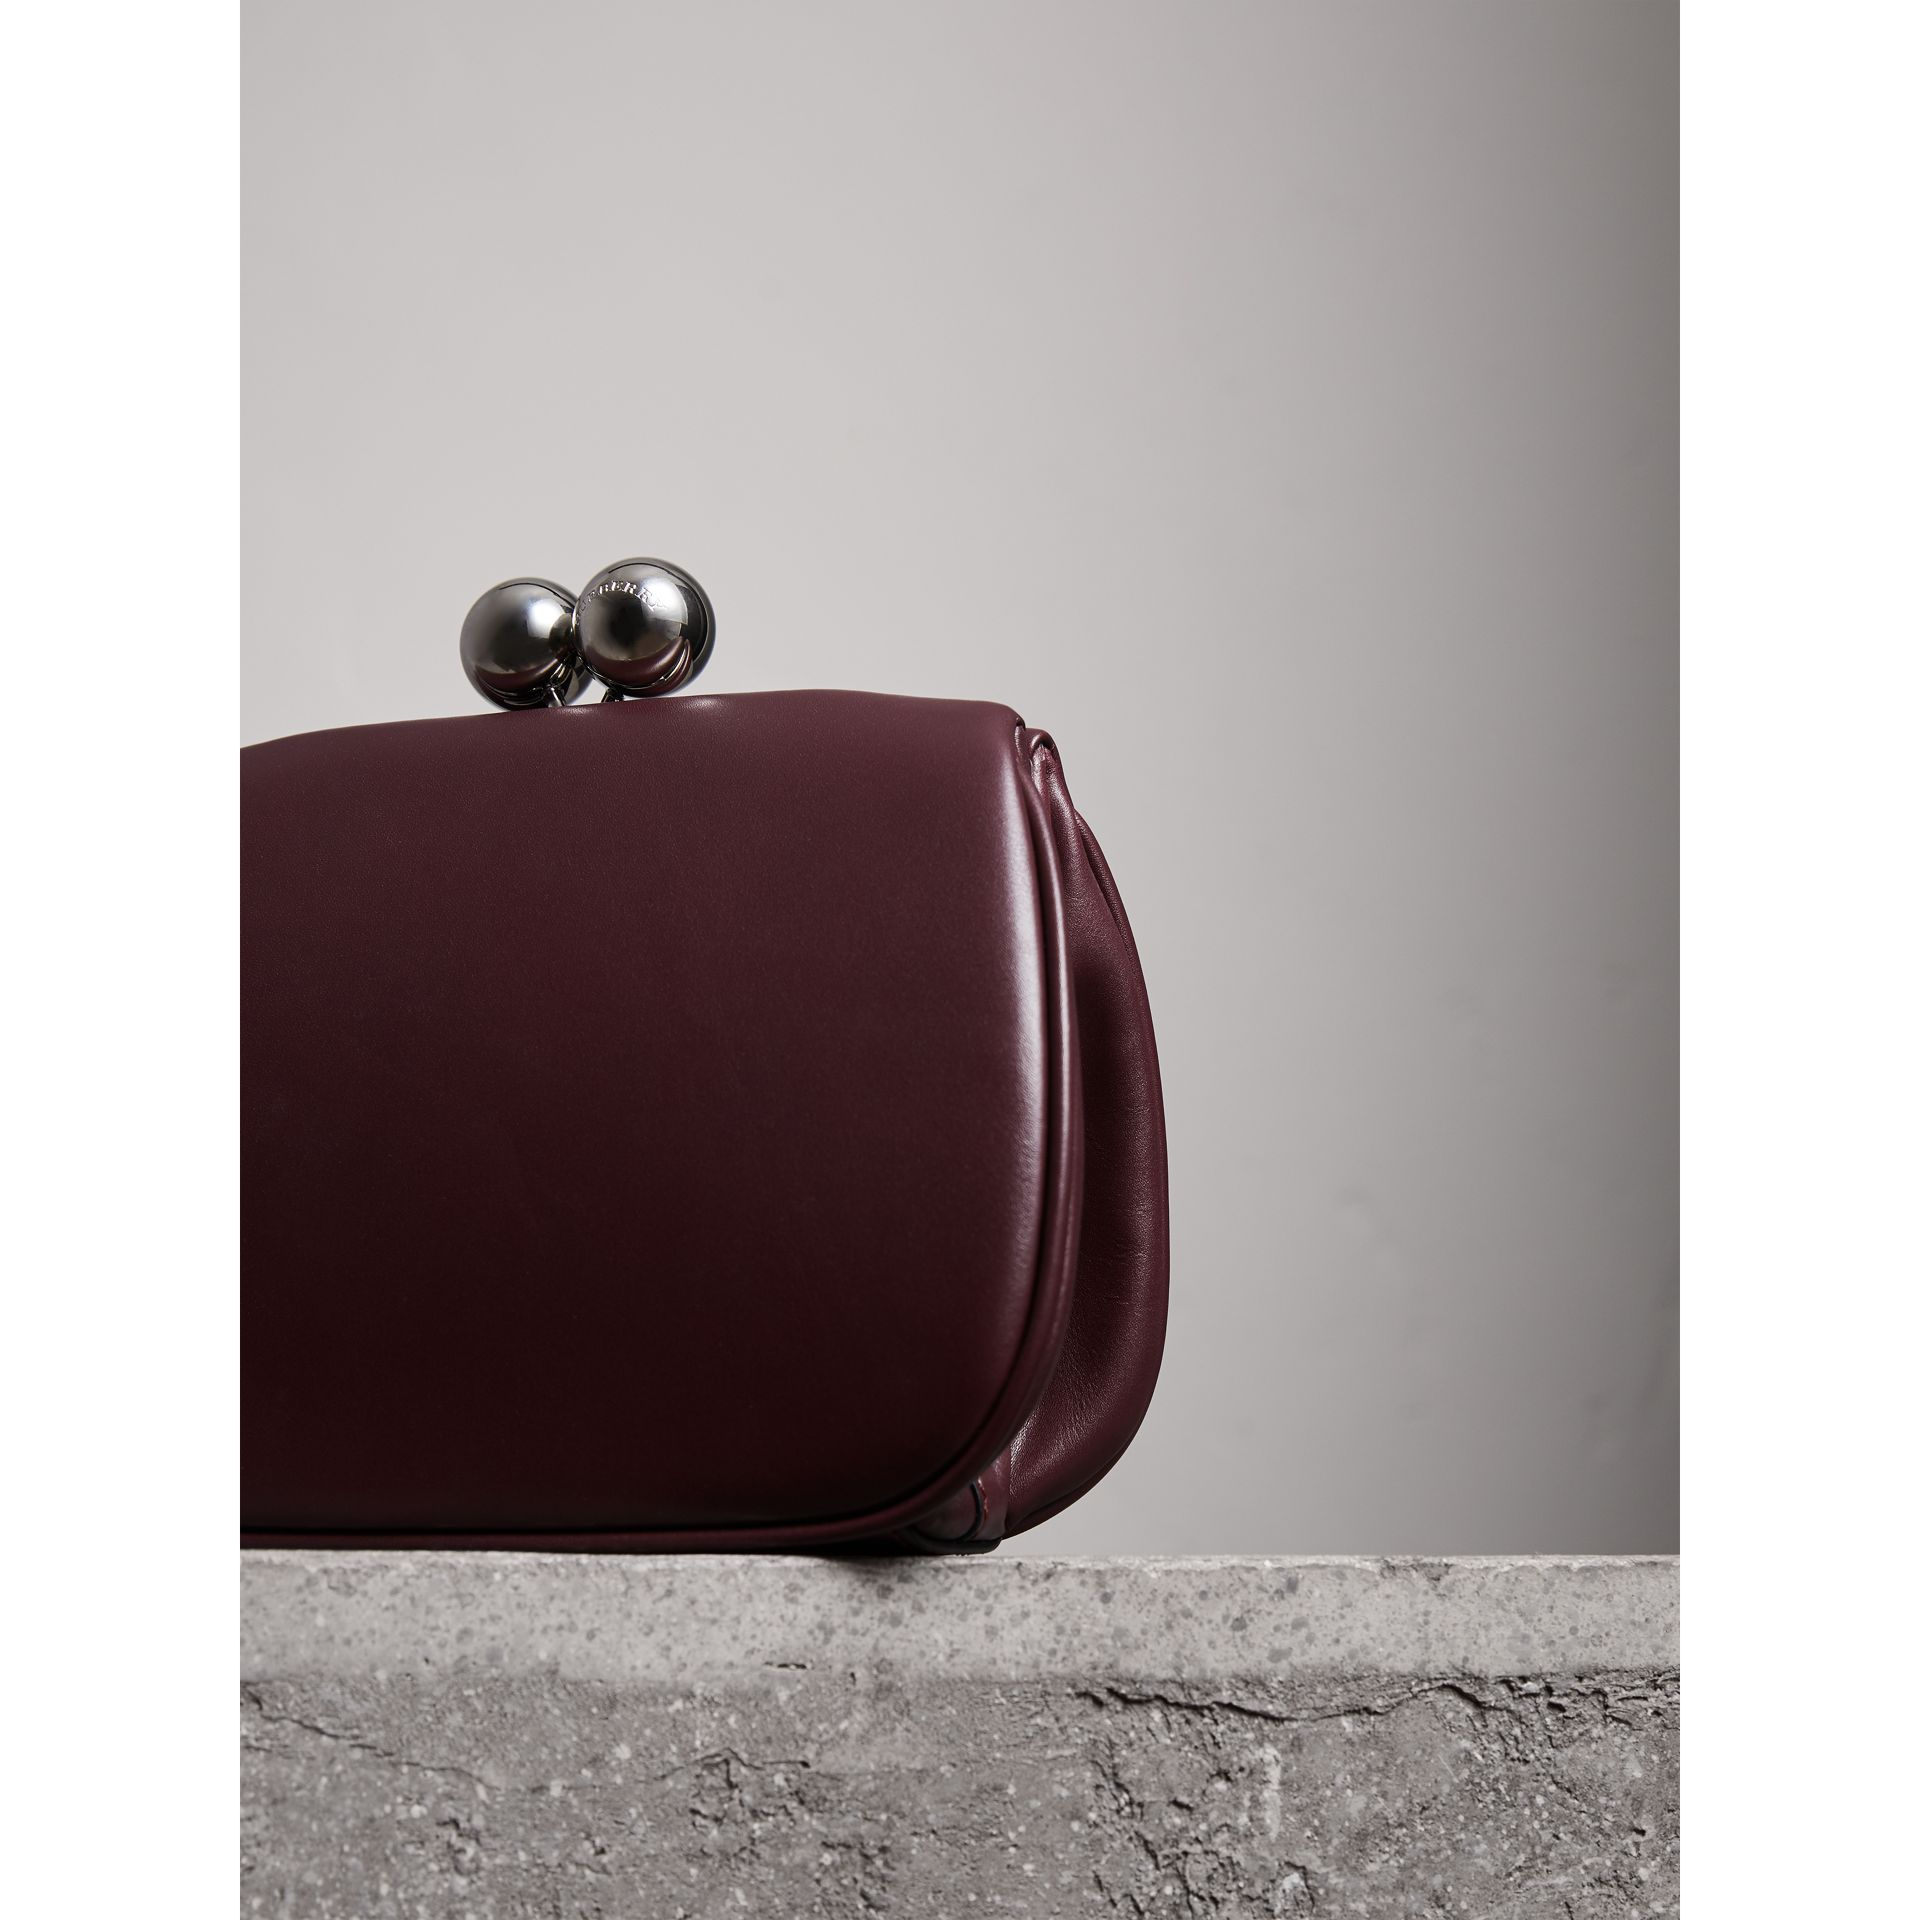 Small Leather Metal Frame Clutch Bag in Burgundy - Women | Burberry Hong Kong - gallery image 2